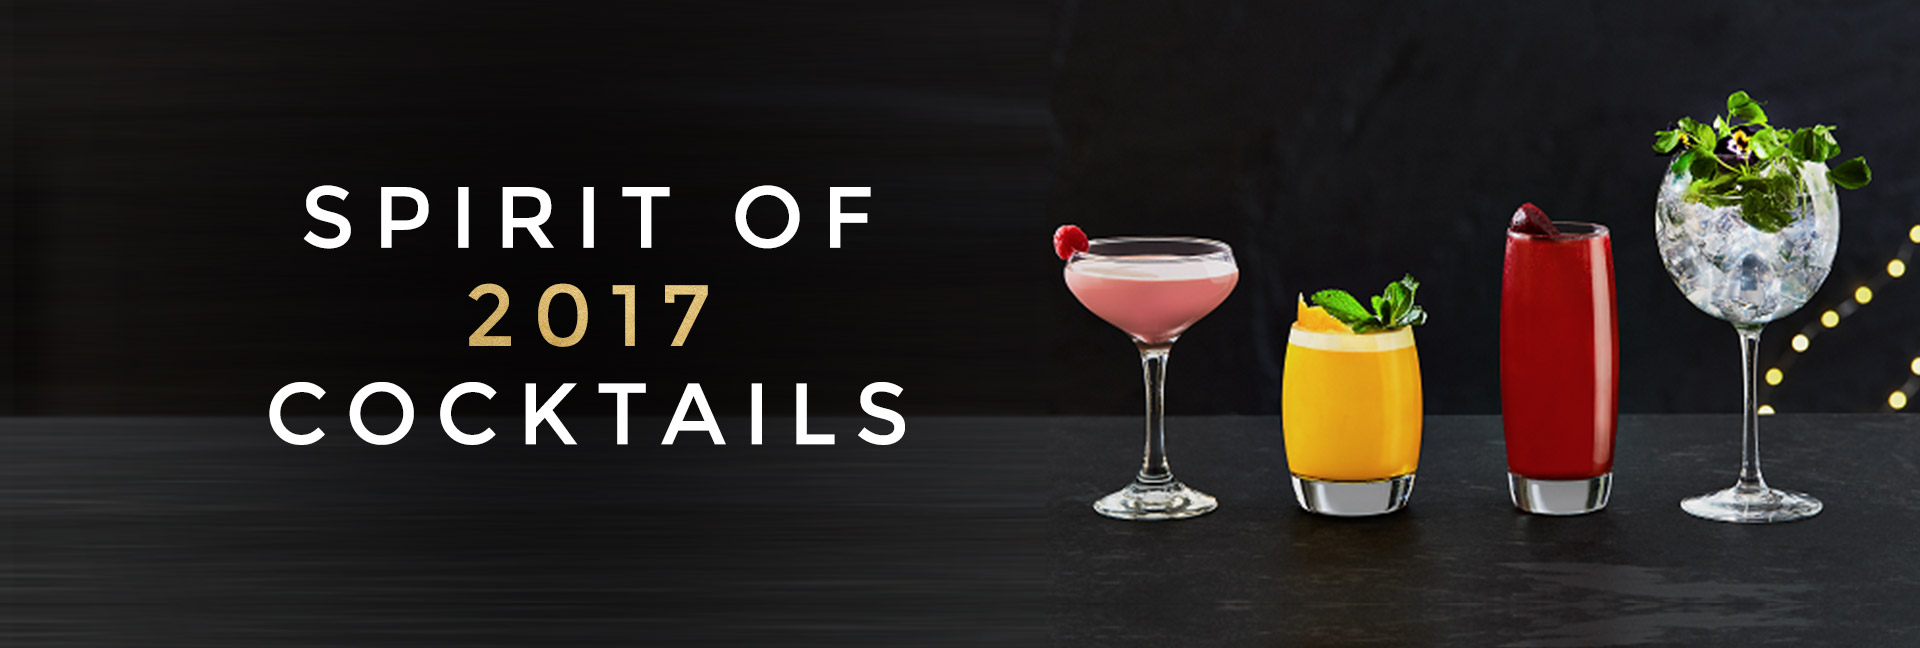 Spirit of 2017 cocktails at All Bar One Moorgate